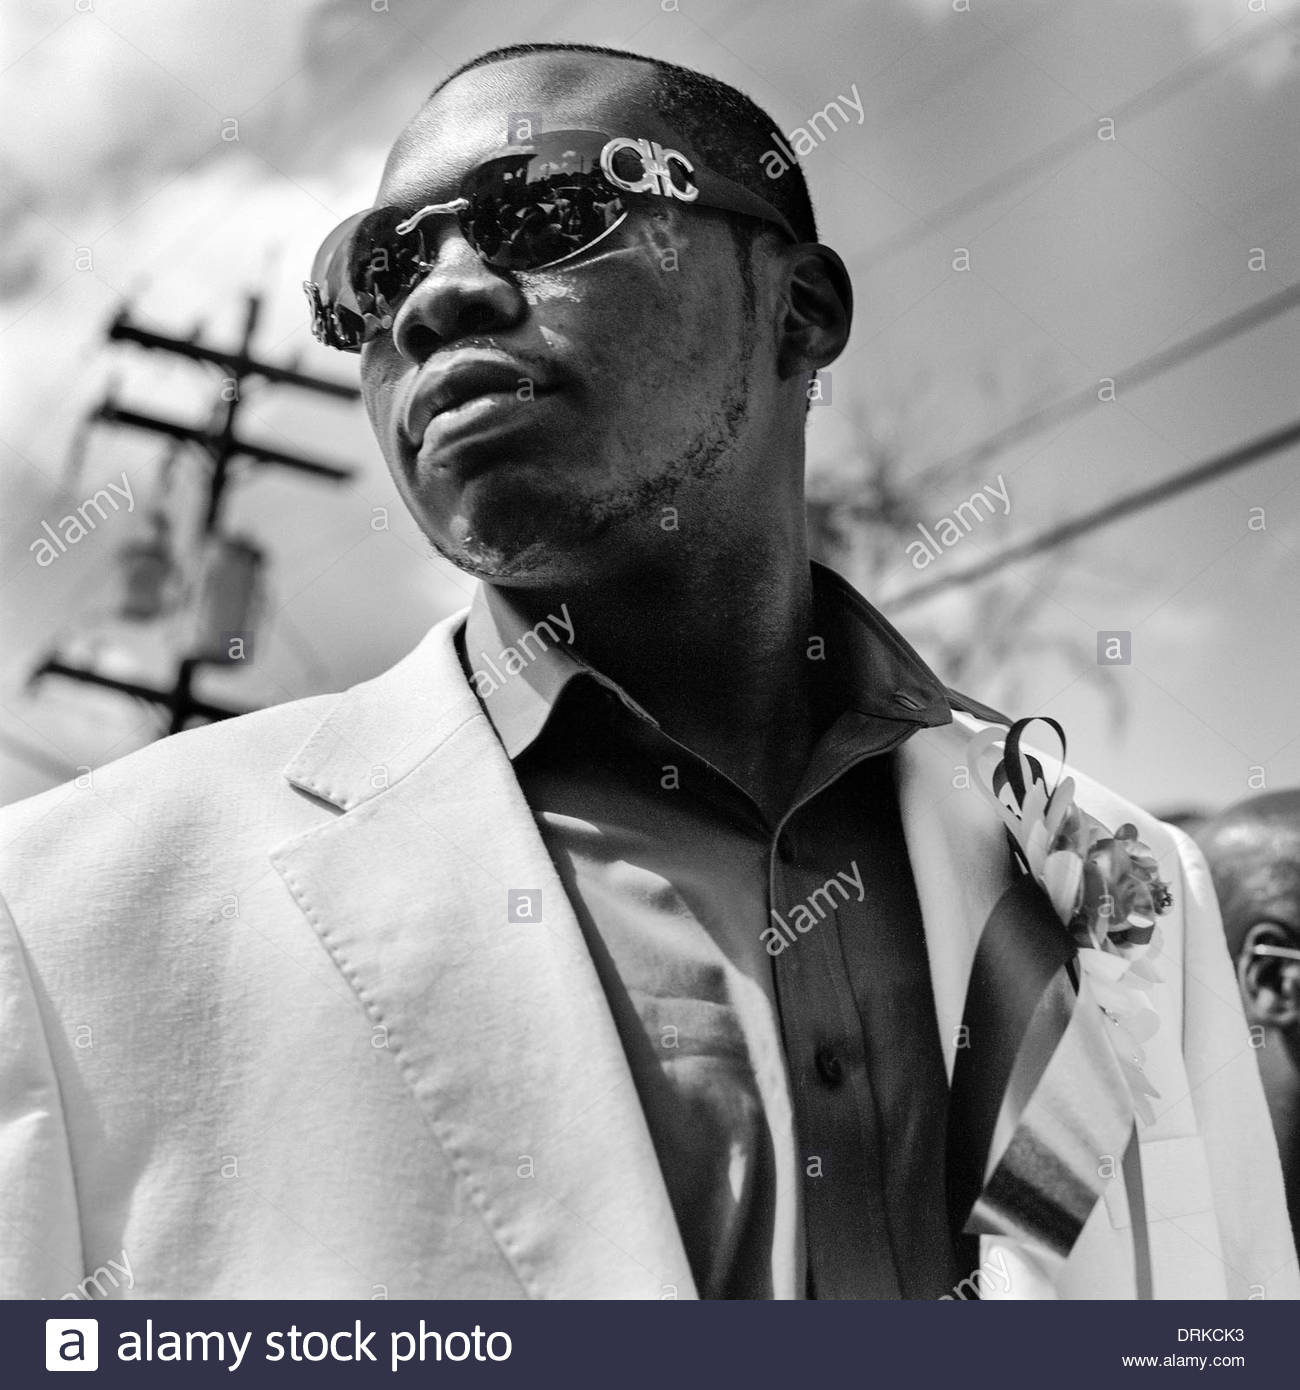 Participant during VIP Ladies Social Aid and Pleasure Club annual Second Line Parade, New Orleans, Louisiana, United States - Stock Image